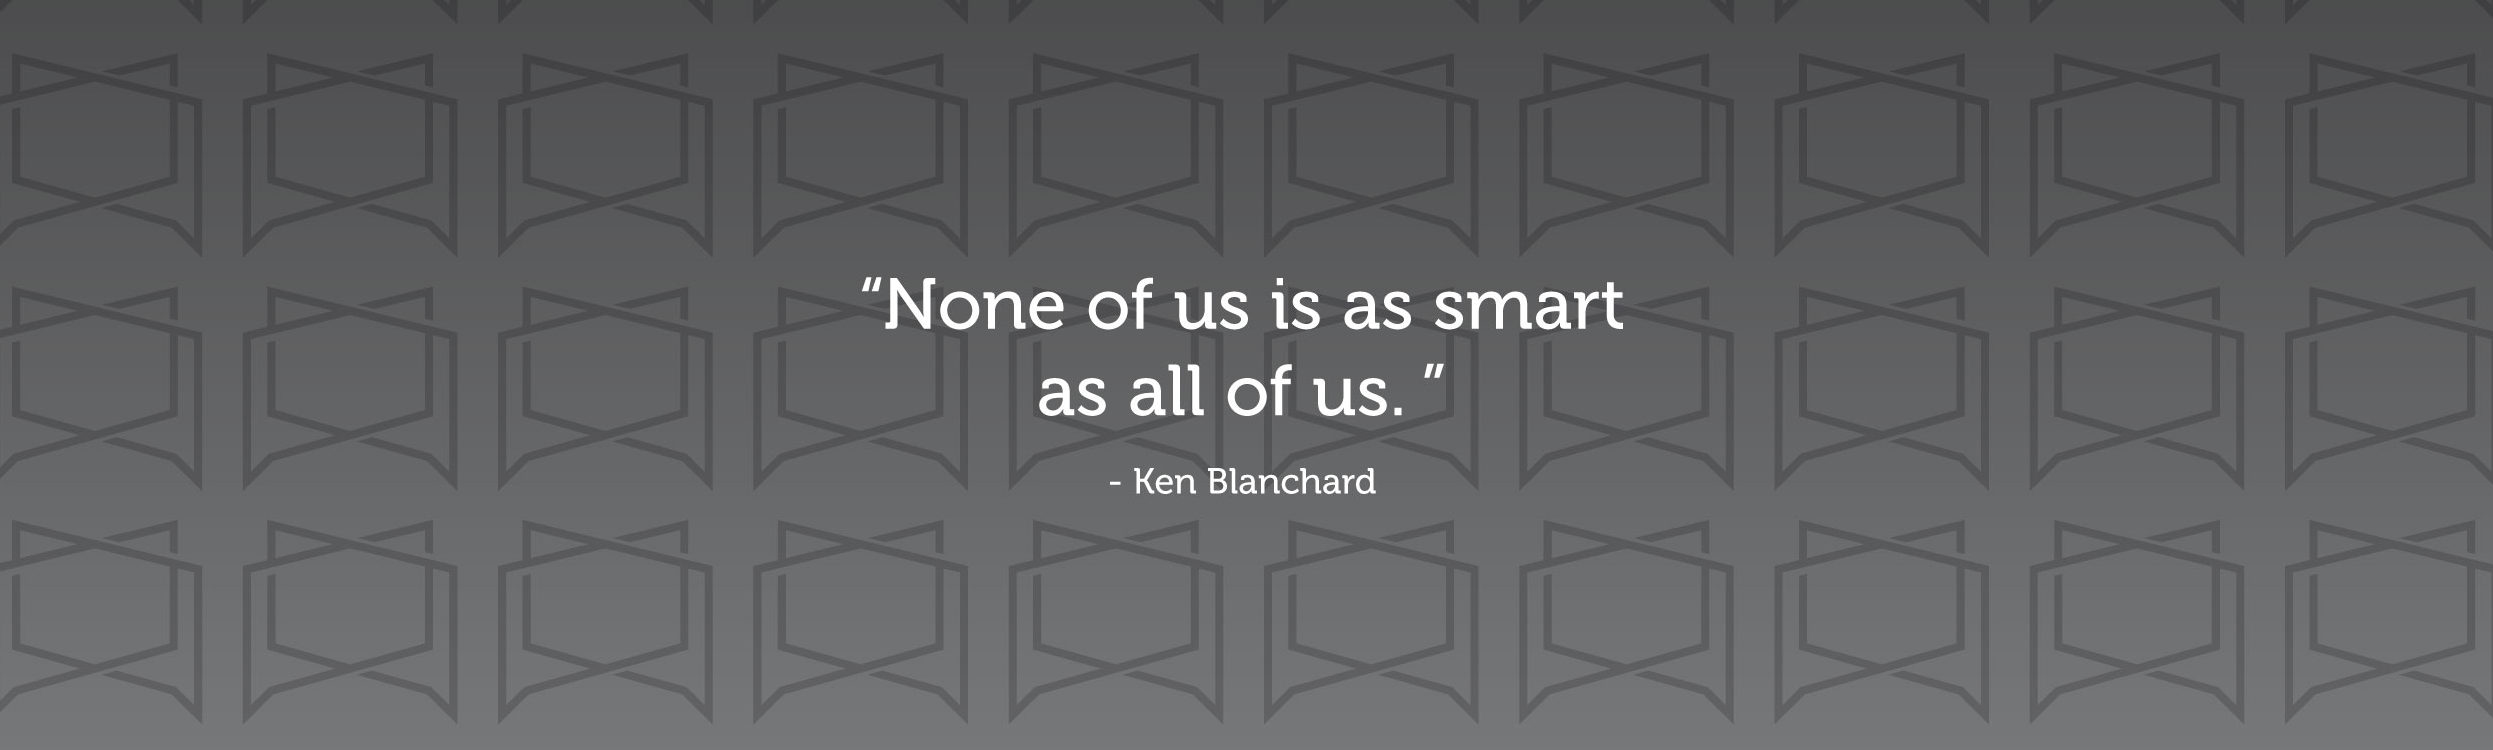 """None of us is as smart as all of us."" -Ken Blanchard"